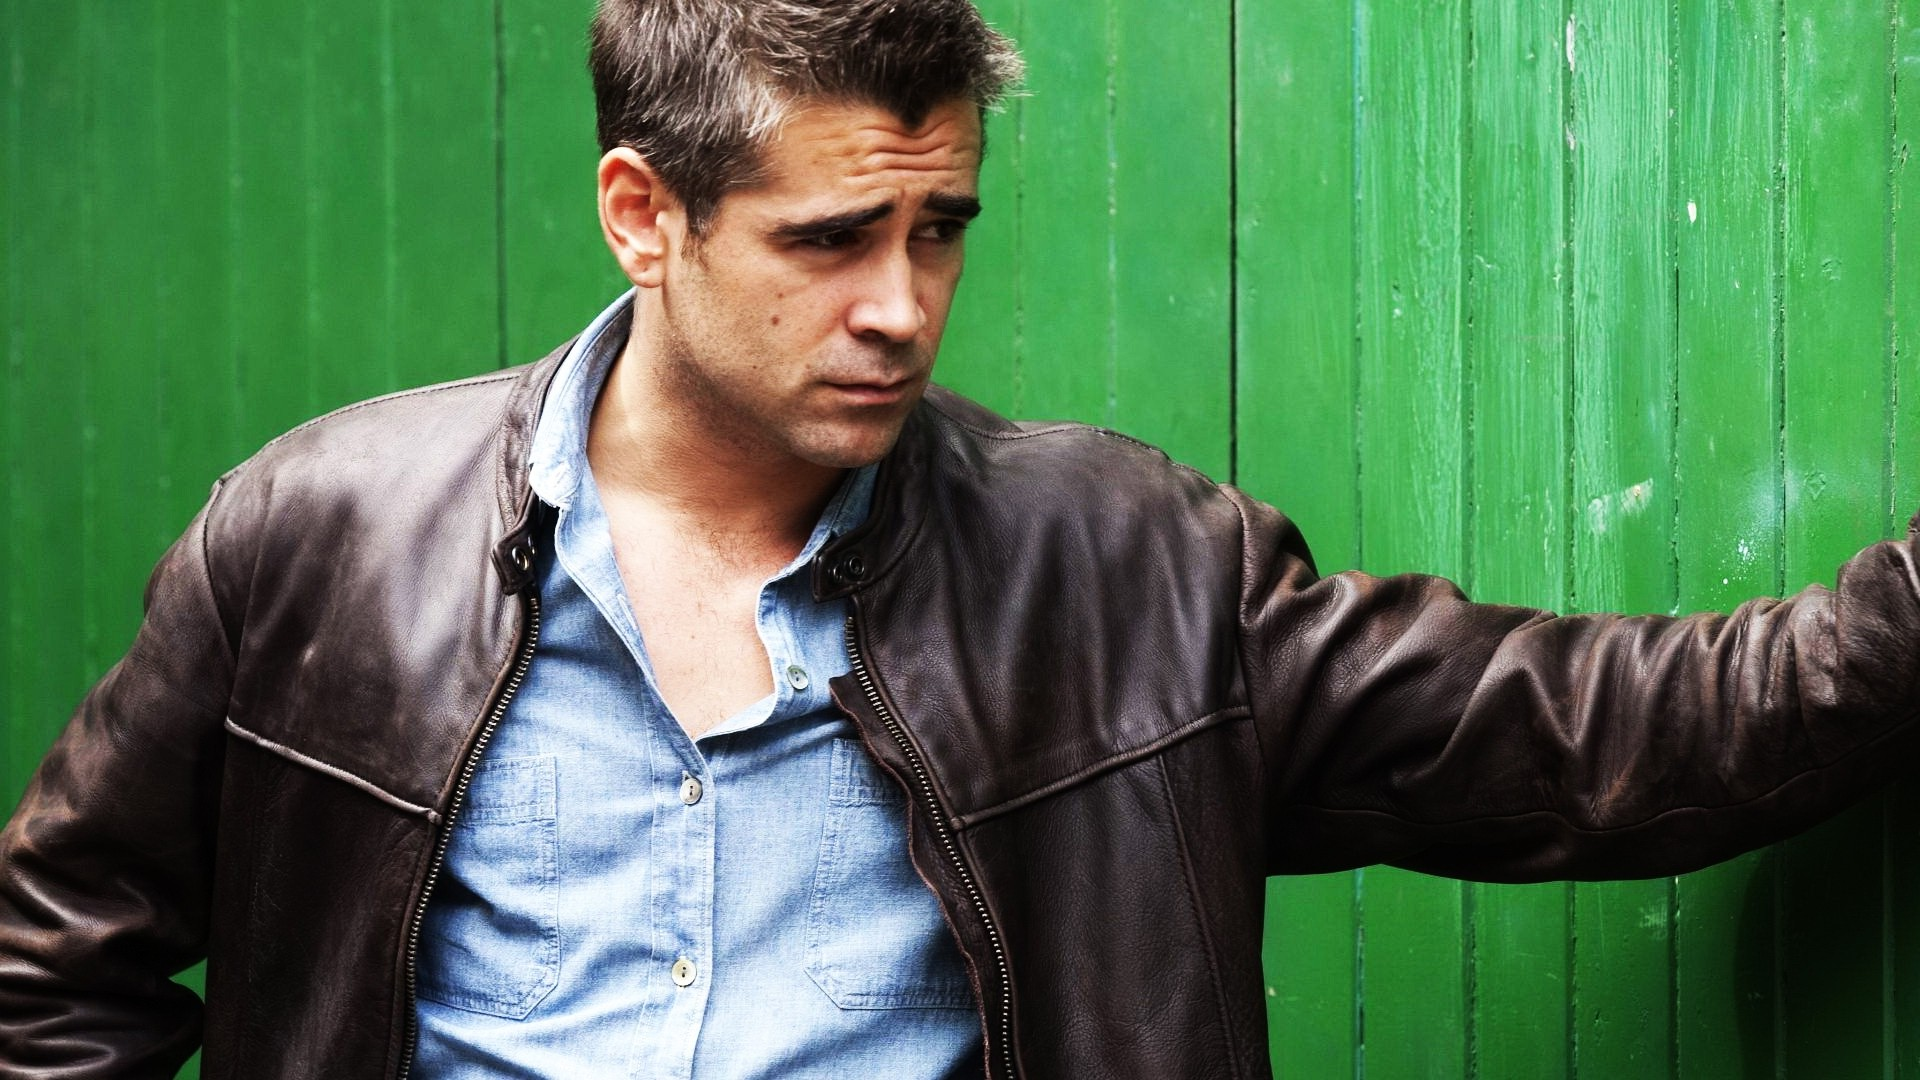 Colin Farrell Wallpaper 6861844 1920x1080